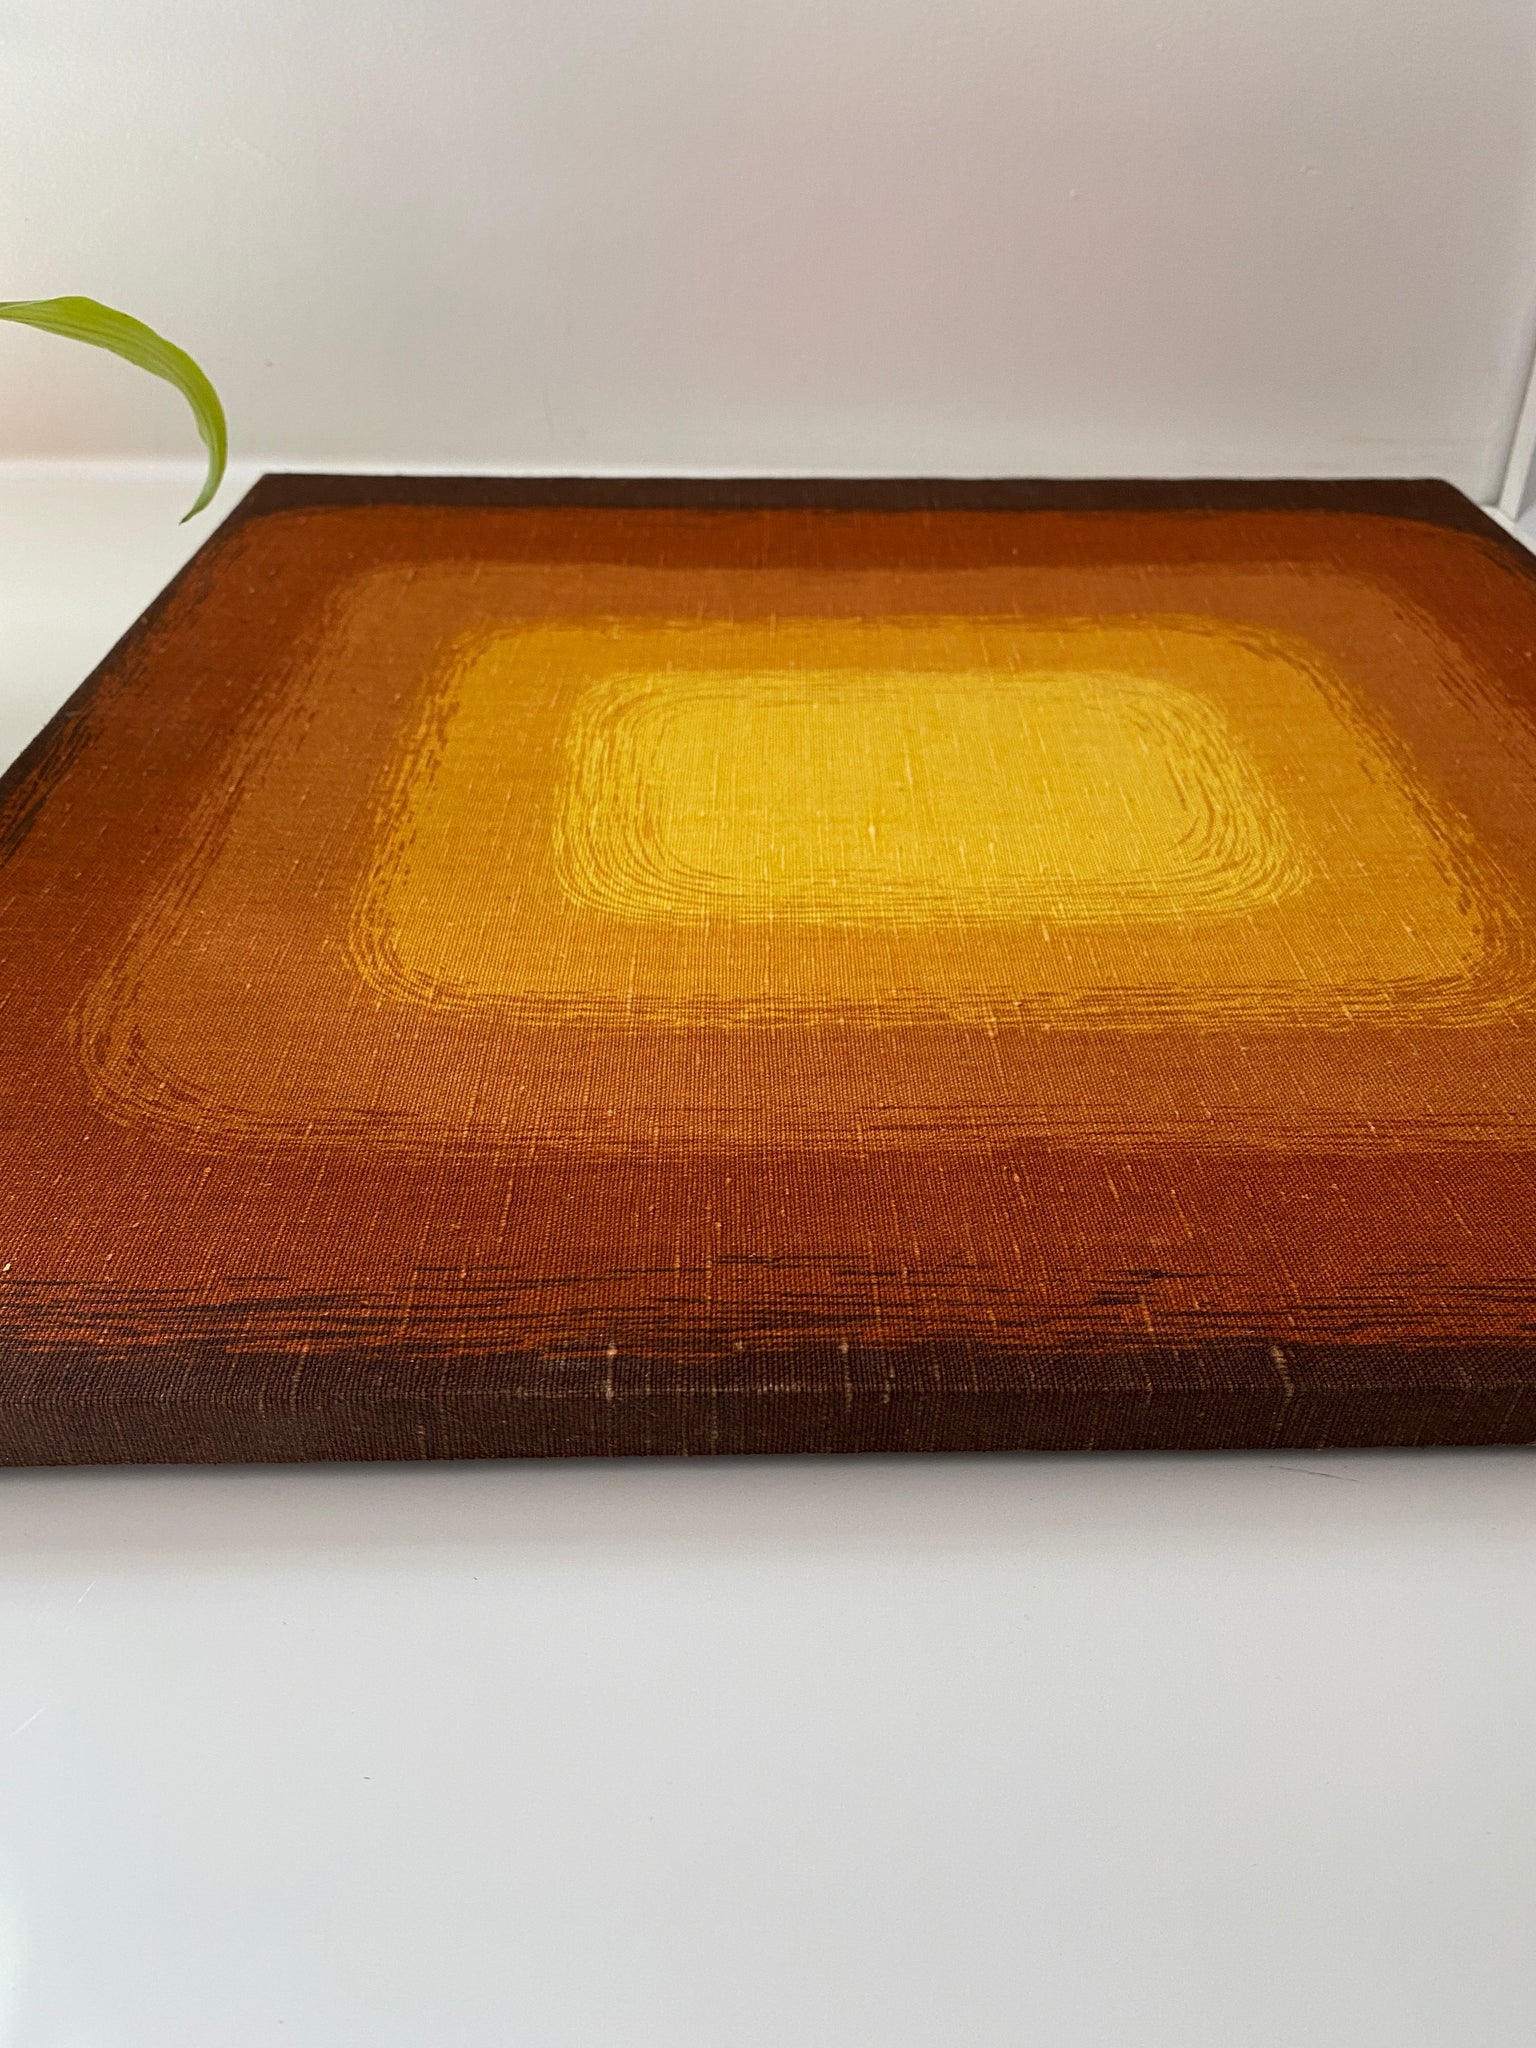 1970's Graphic  Silkscreen-on-Canvas Print in Yellow, Orange, and Brown Set